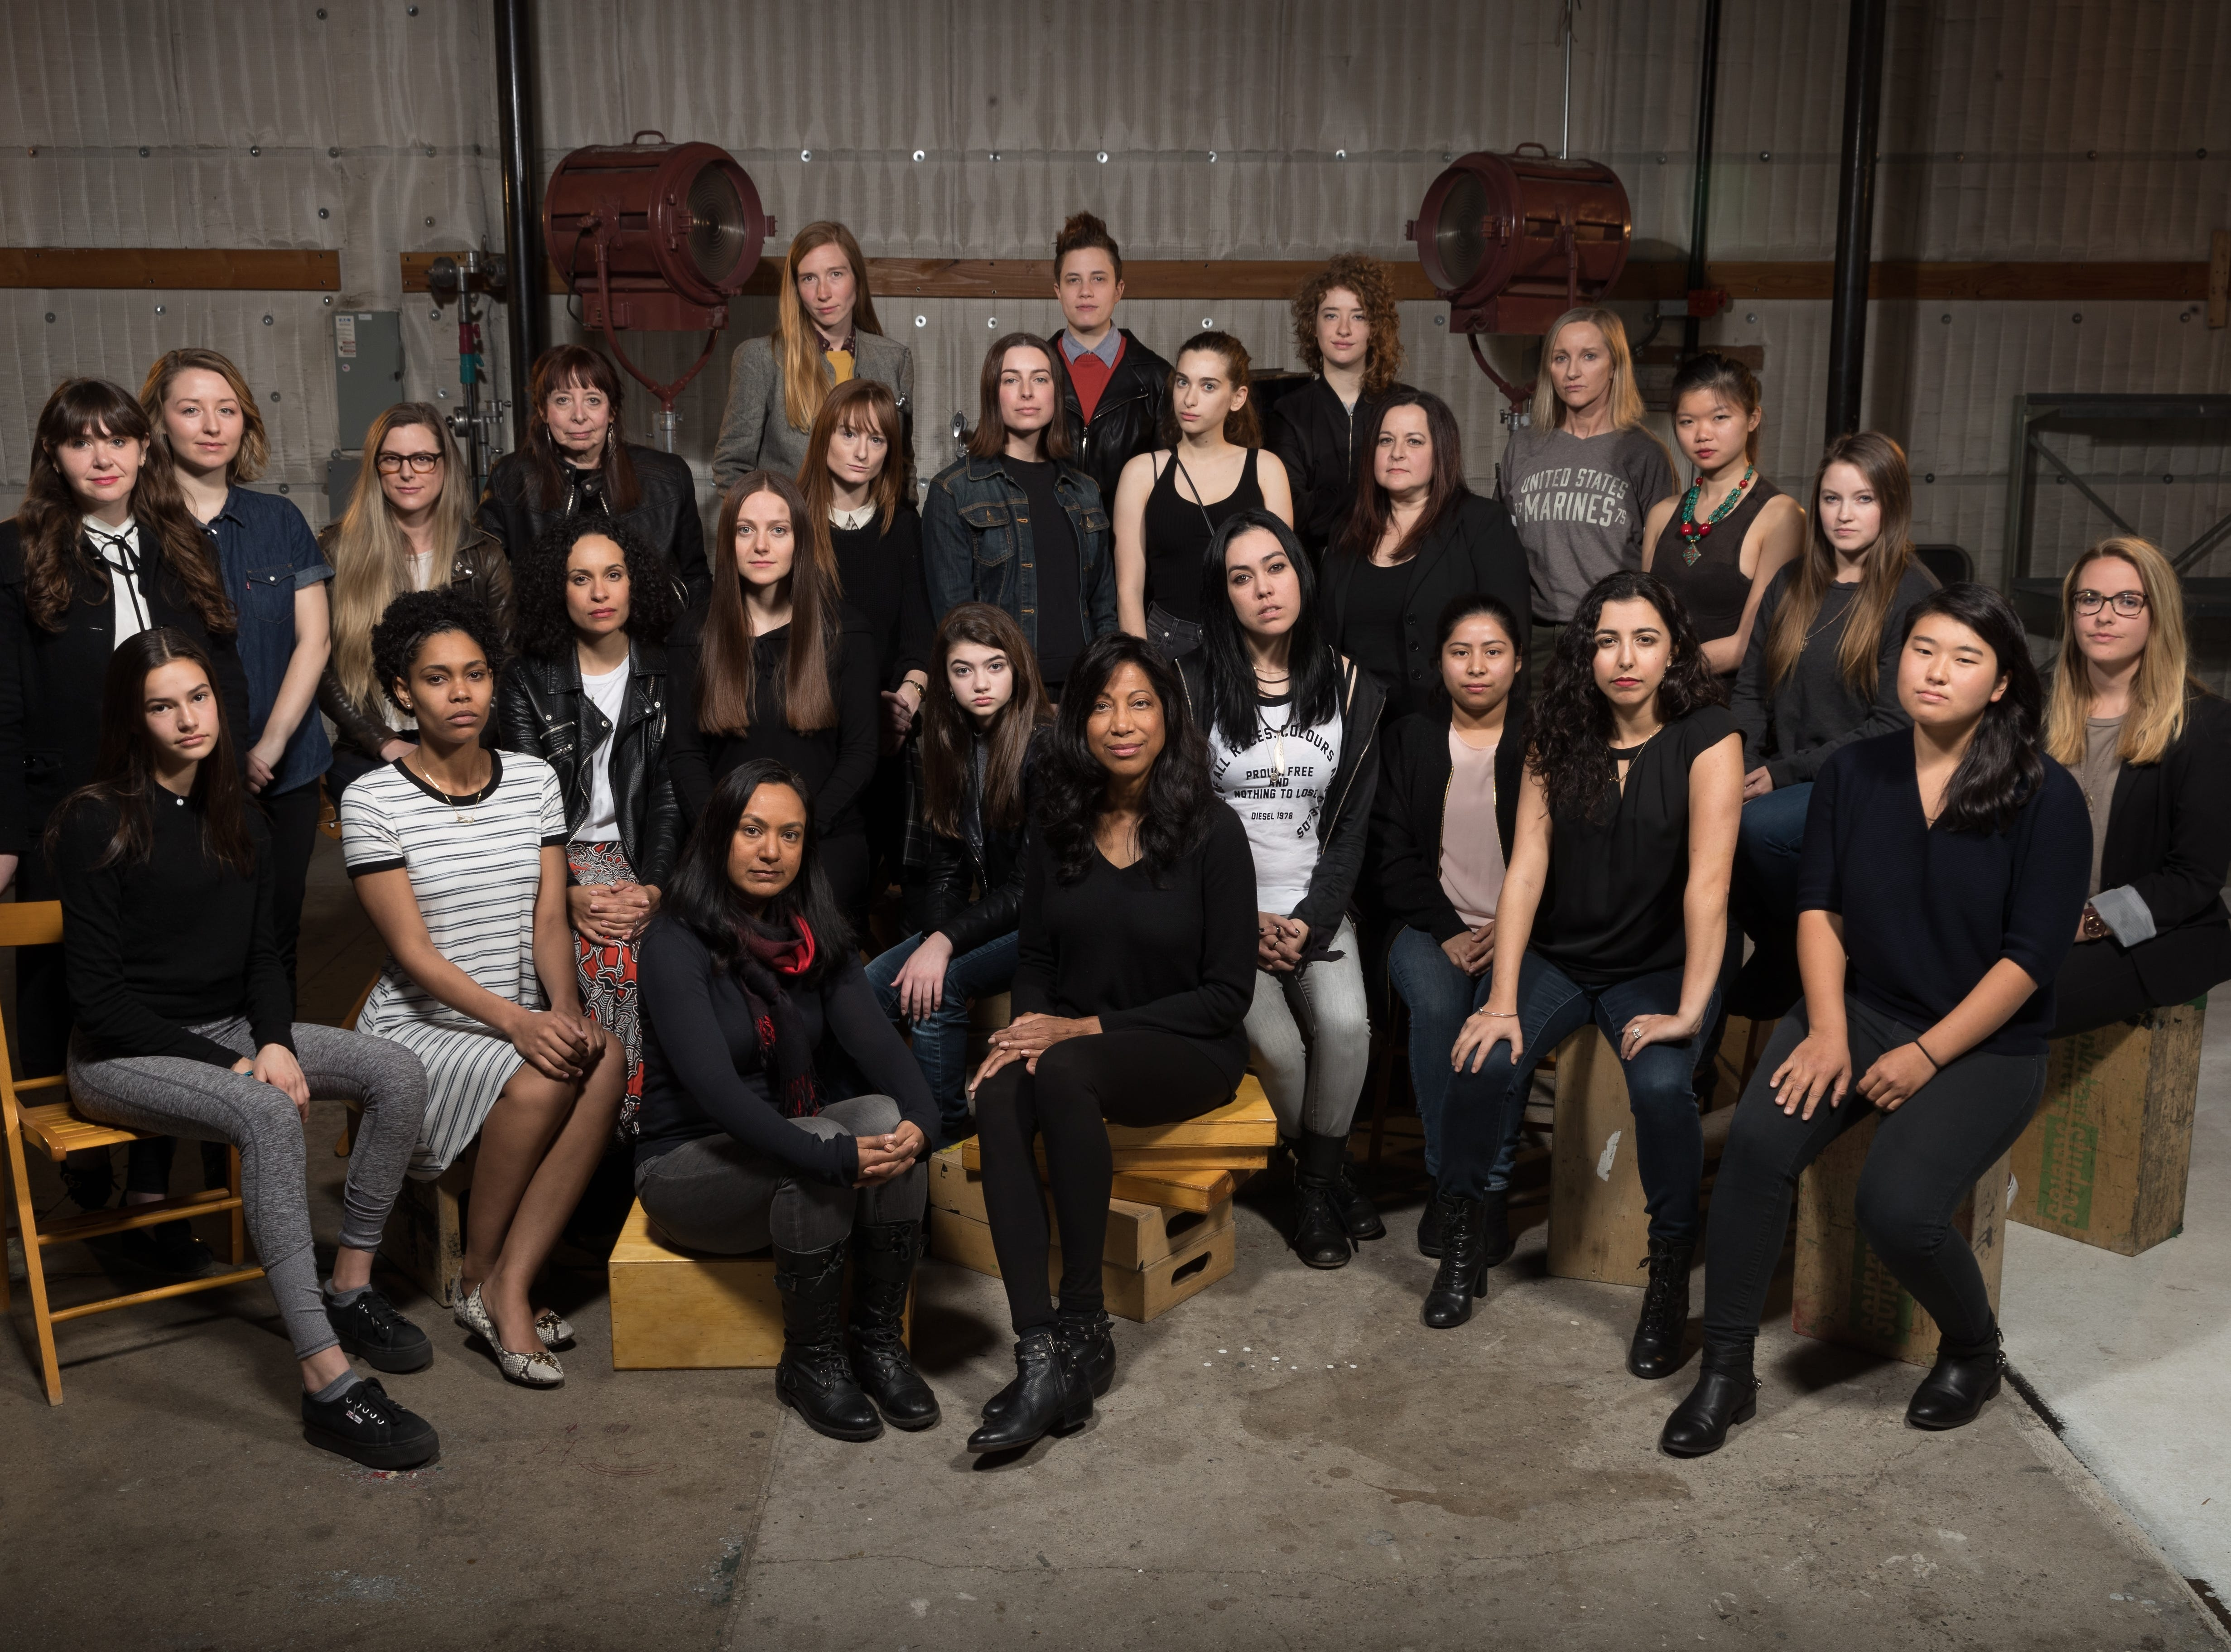 Feb. 20, 2018: Twenty-six women, all of whom say they have experienced sexual harassment, or worse, during their time in movie industry, pose for a portrait on in Los Angeles. A USA TODAY exclusive survey, focused specifically on Hollywood, has found that the entertainment industry's sexual misconduct problem is so bad that almost every one of hundreds of women questioned a startling 94 percent say they have experienced some form of sexual harassment or assault in their careers.